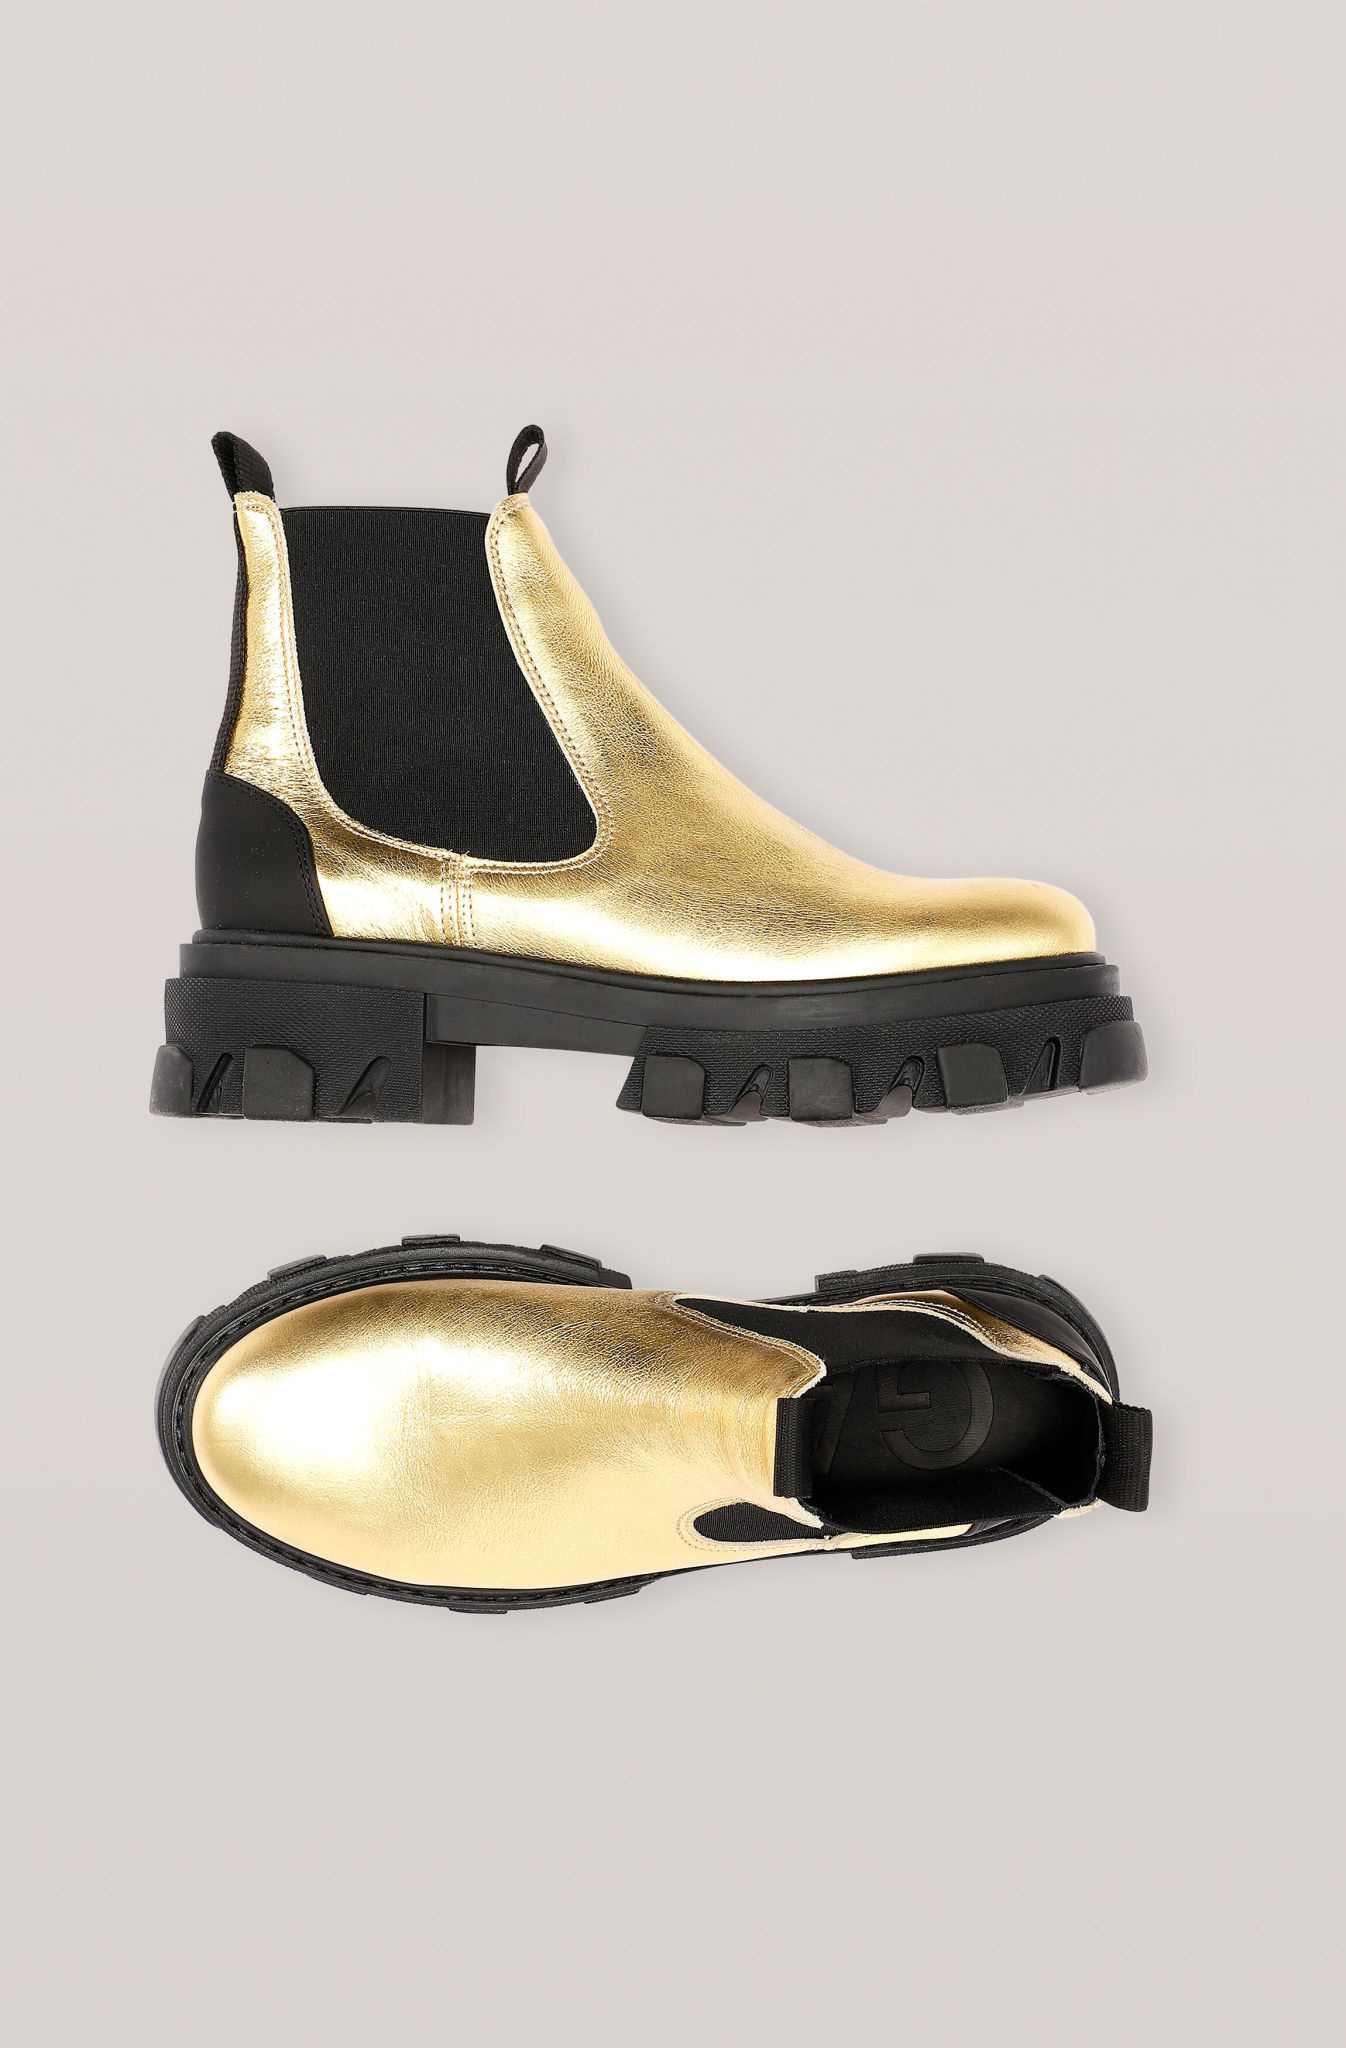 GANNI Lug Sole Low Chelsea Boot in Gold